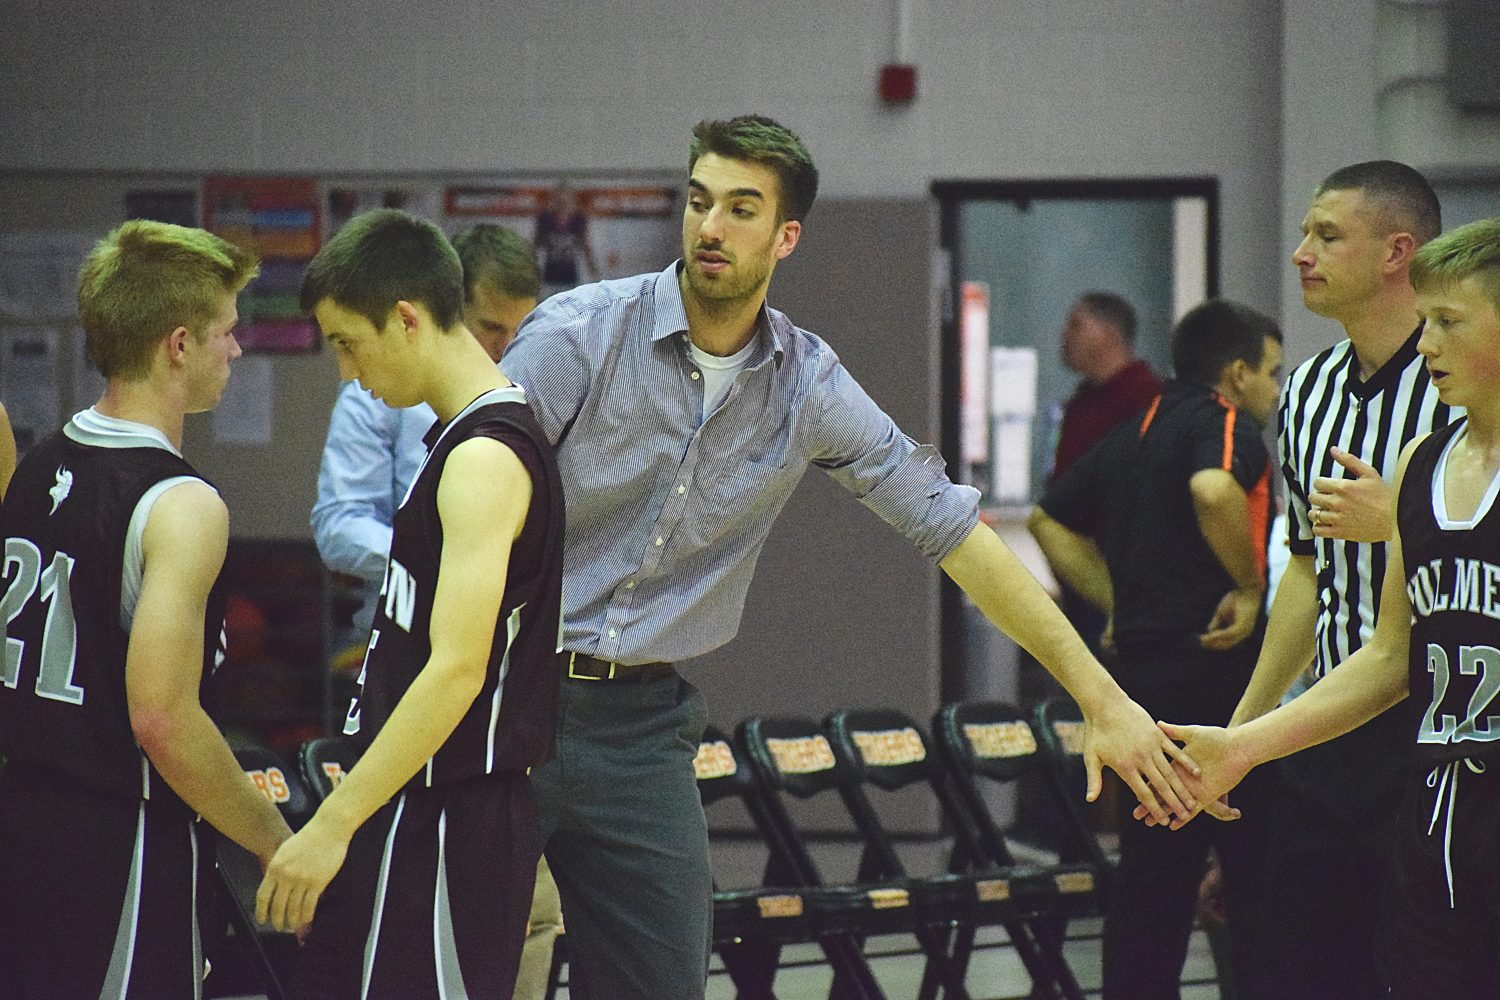 Cale Zuiker, a 2011 Marshfield High School graduate and the seventh all-time leading scorer in program history, is now an assistant coach for Holmen. Marshfield played Holmen on Nov. 28. Paul Lecker photo